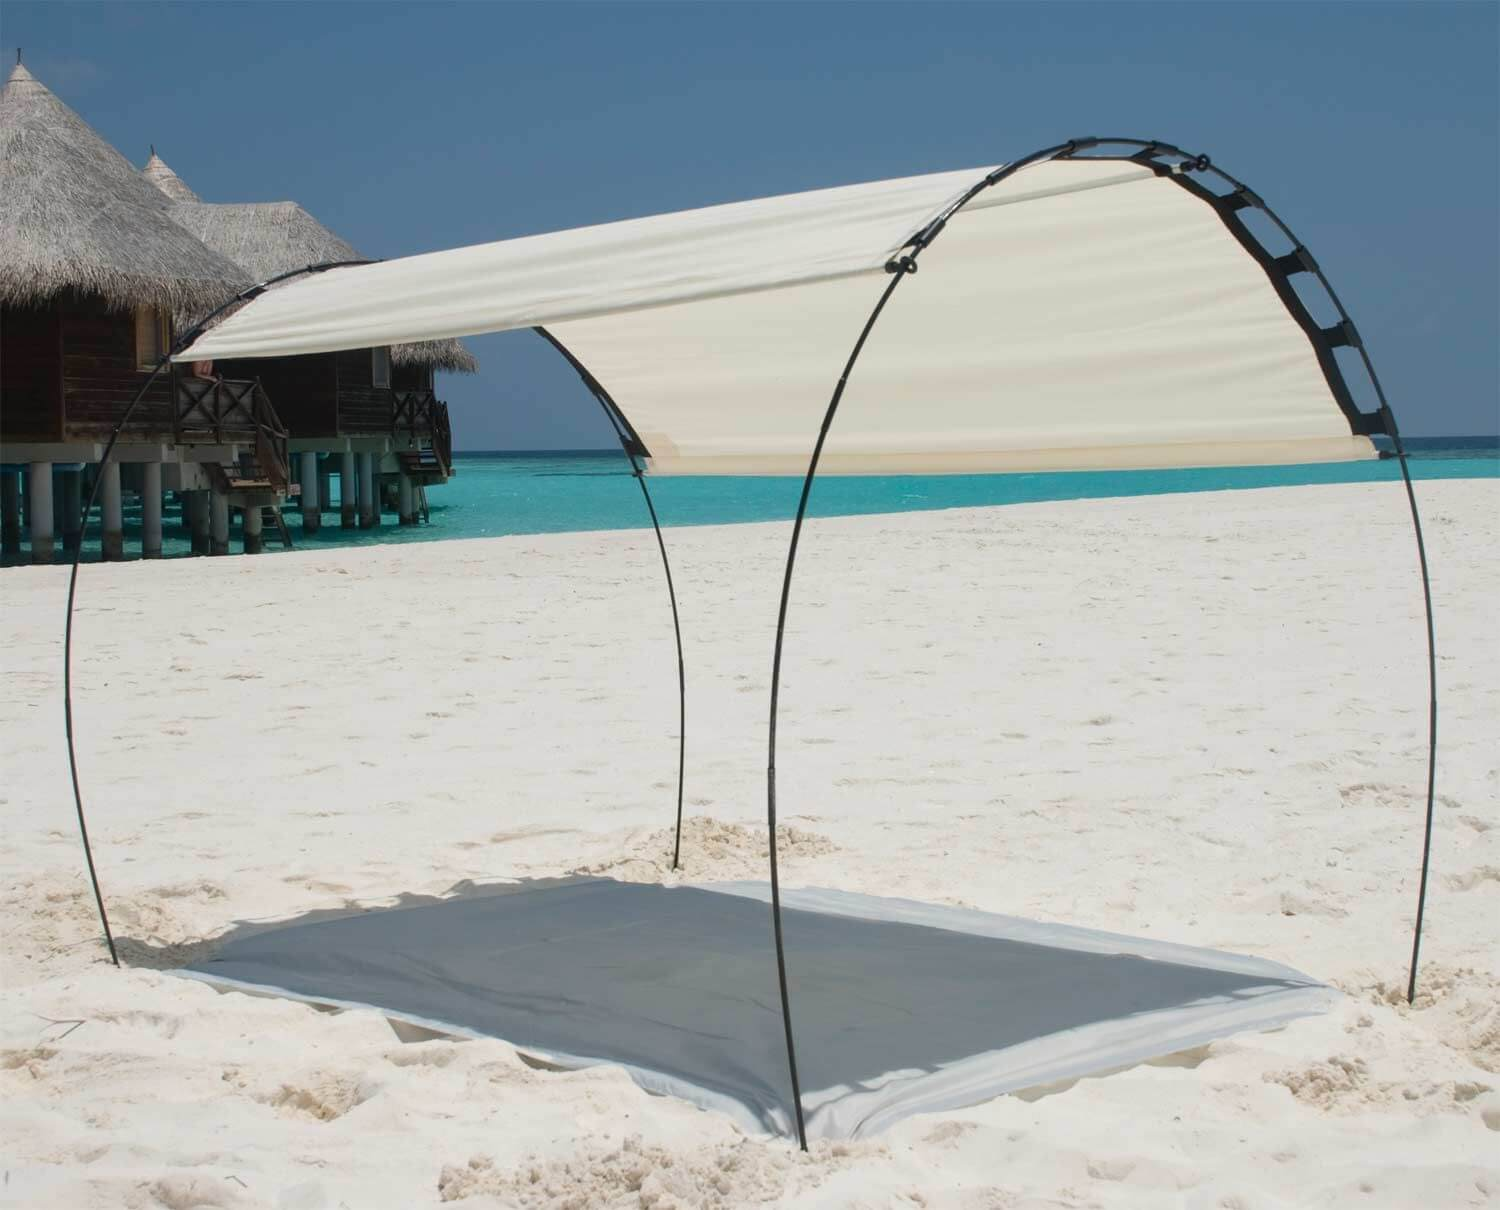 Top 6 Best Beach Canopies 2018 - Live Enhanced